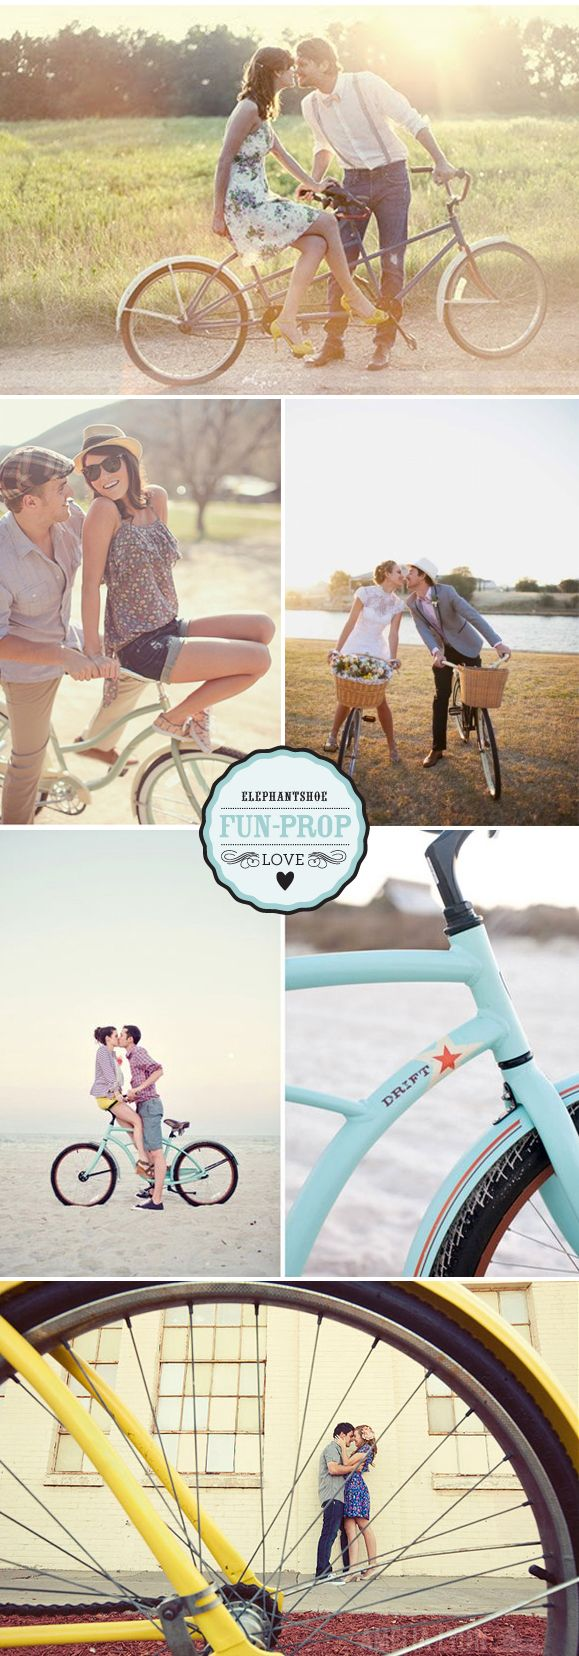 would be cute for an anniversary shoot ... i need a cool looking retro bike!